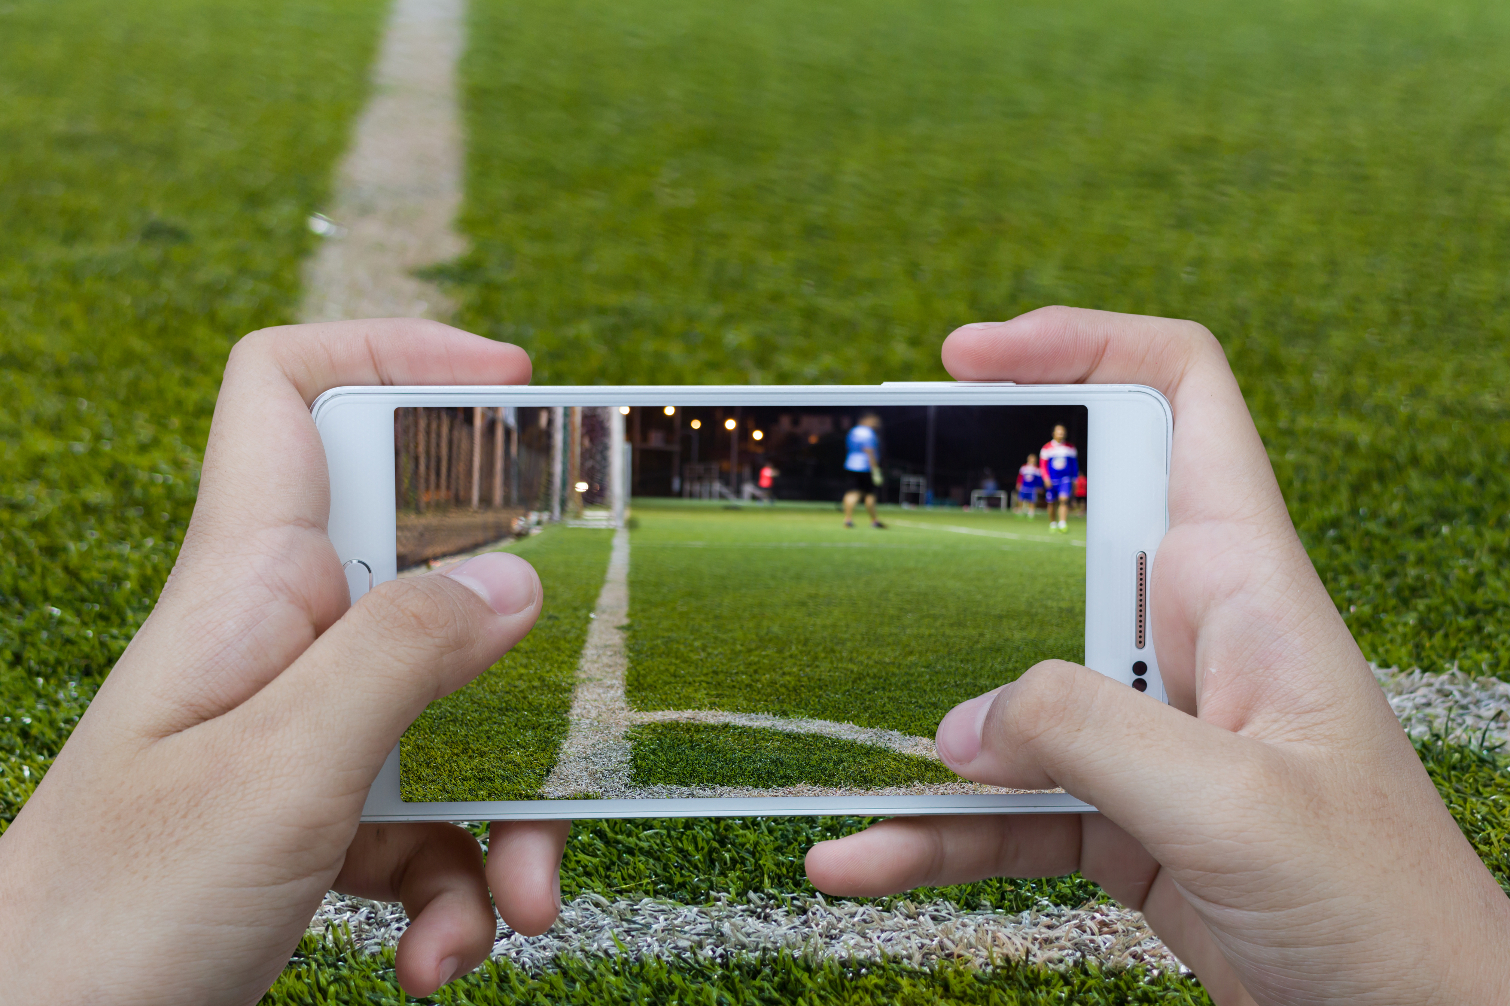 Best Soccer Apps - News, Scores and Games for iOS, Android | Tom's Guide